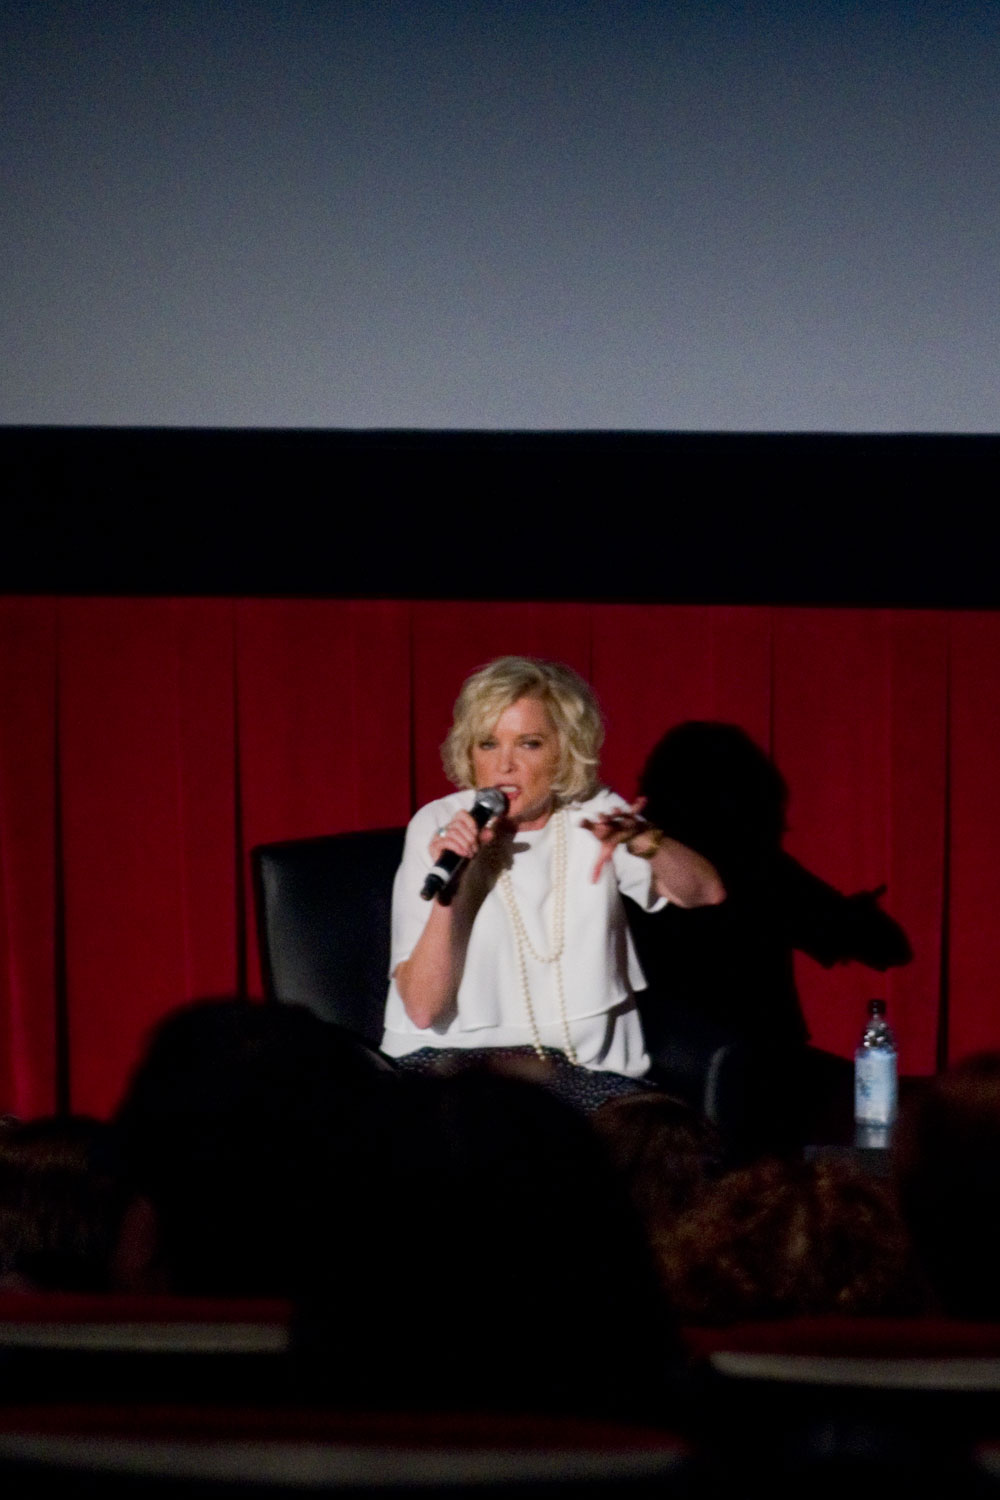 Christine Ebersole at the TCM Film Festival